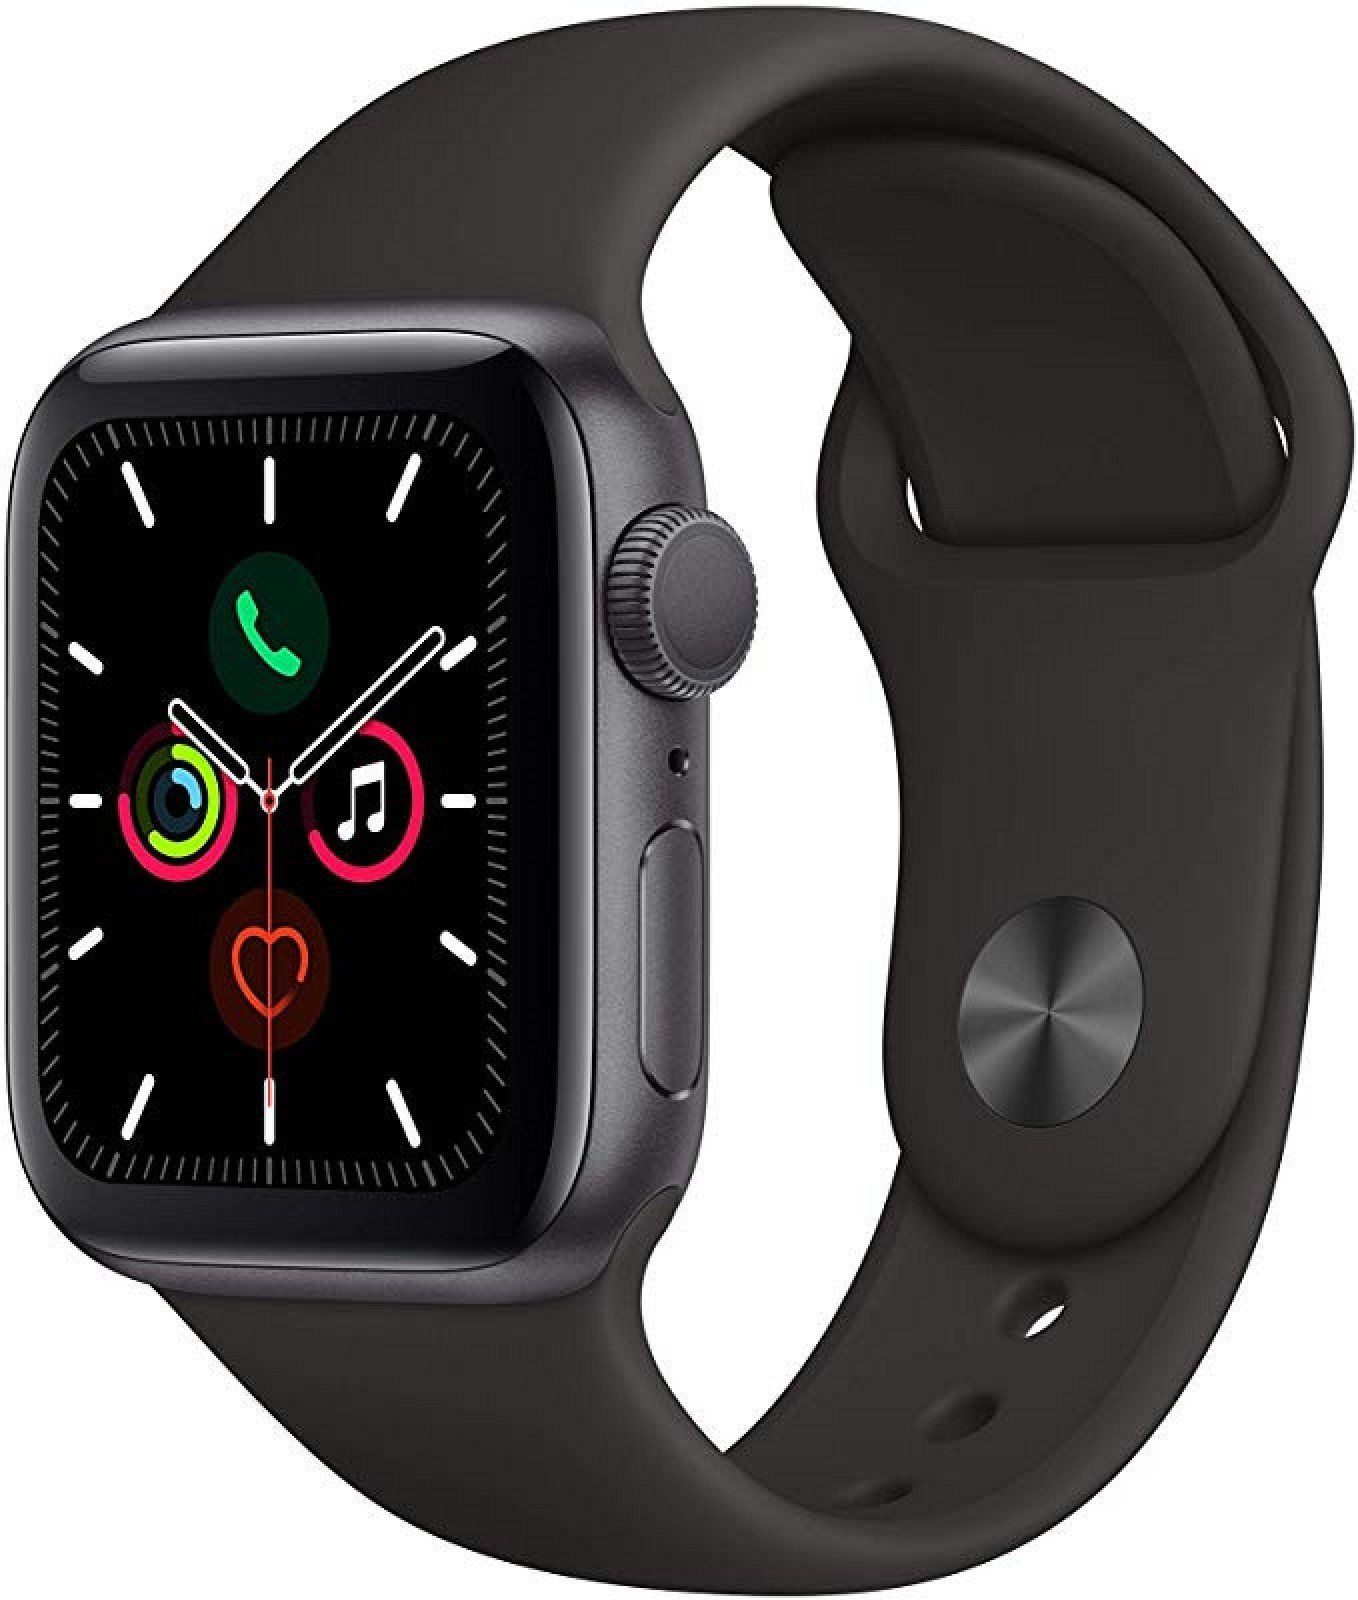 Black Friday 2019 Save Up to 80 on Apple Watch Series 5